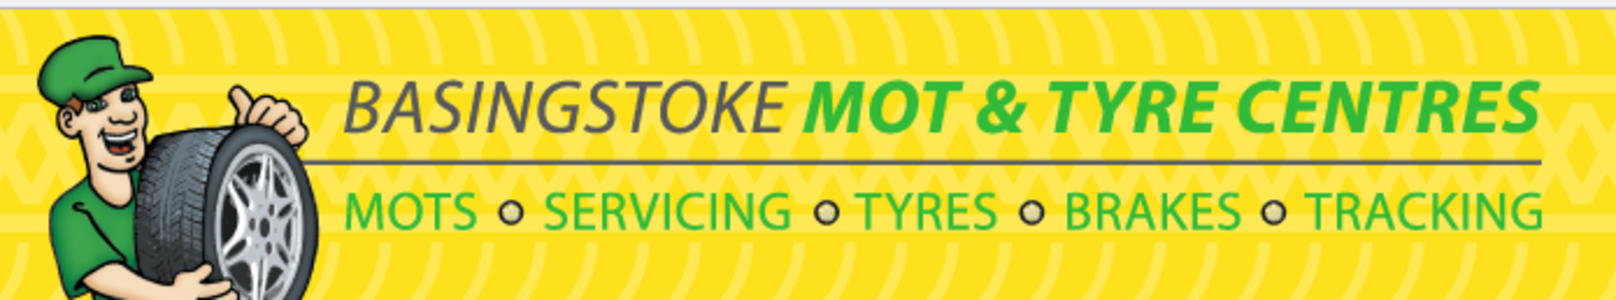 Basingstoke MOT & Tyre Centre - Brighton Hill